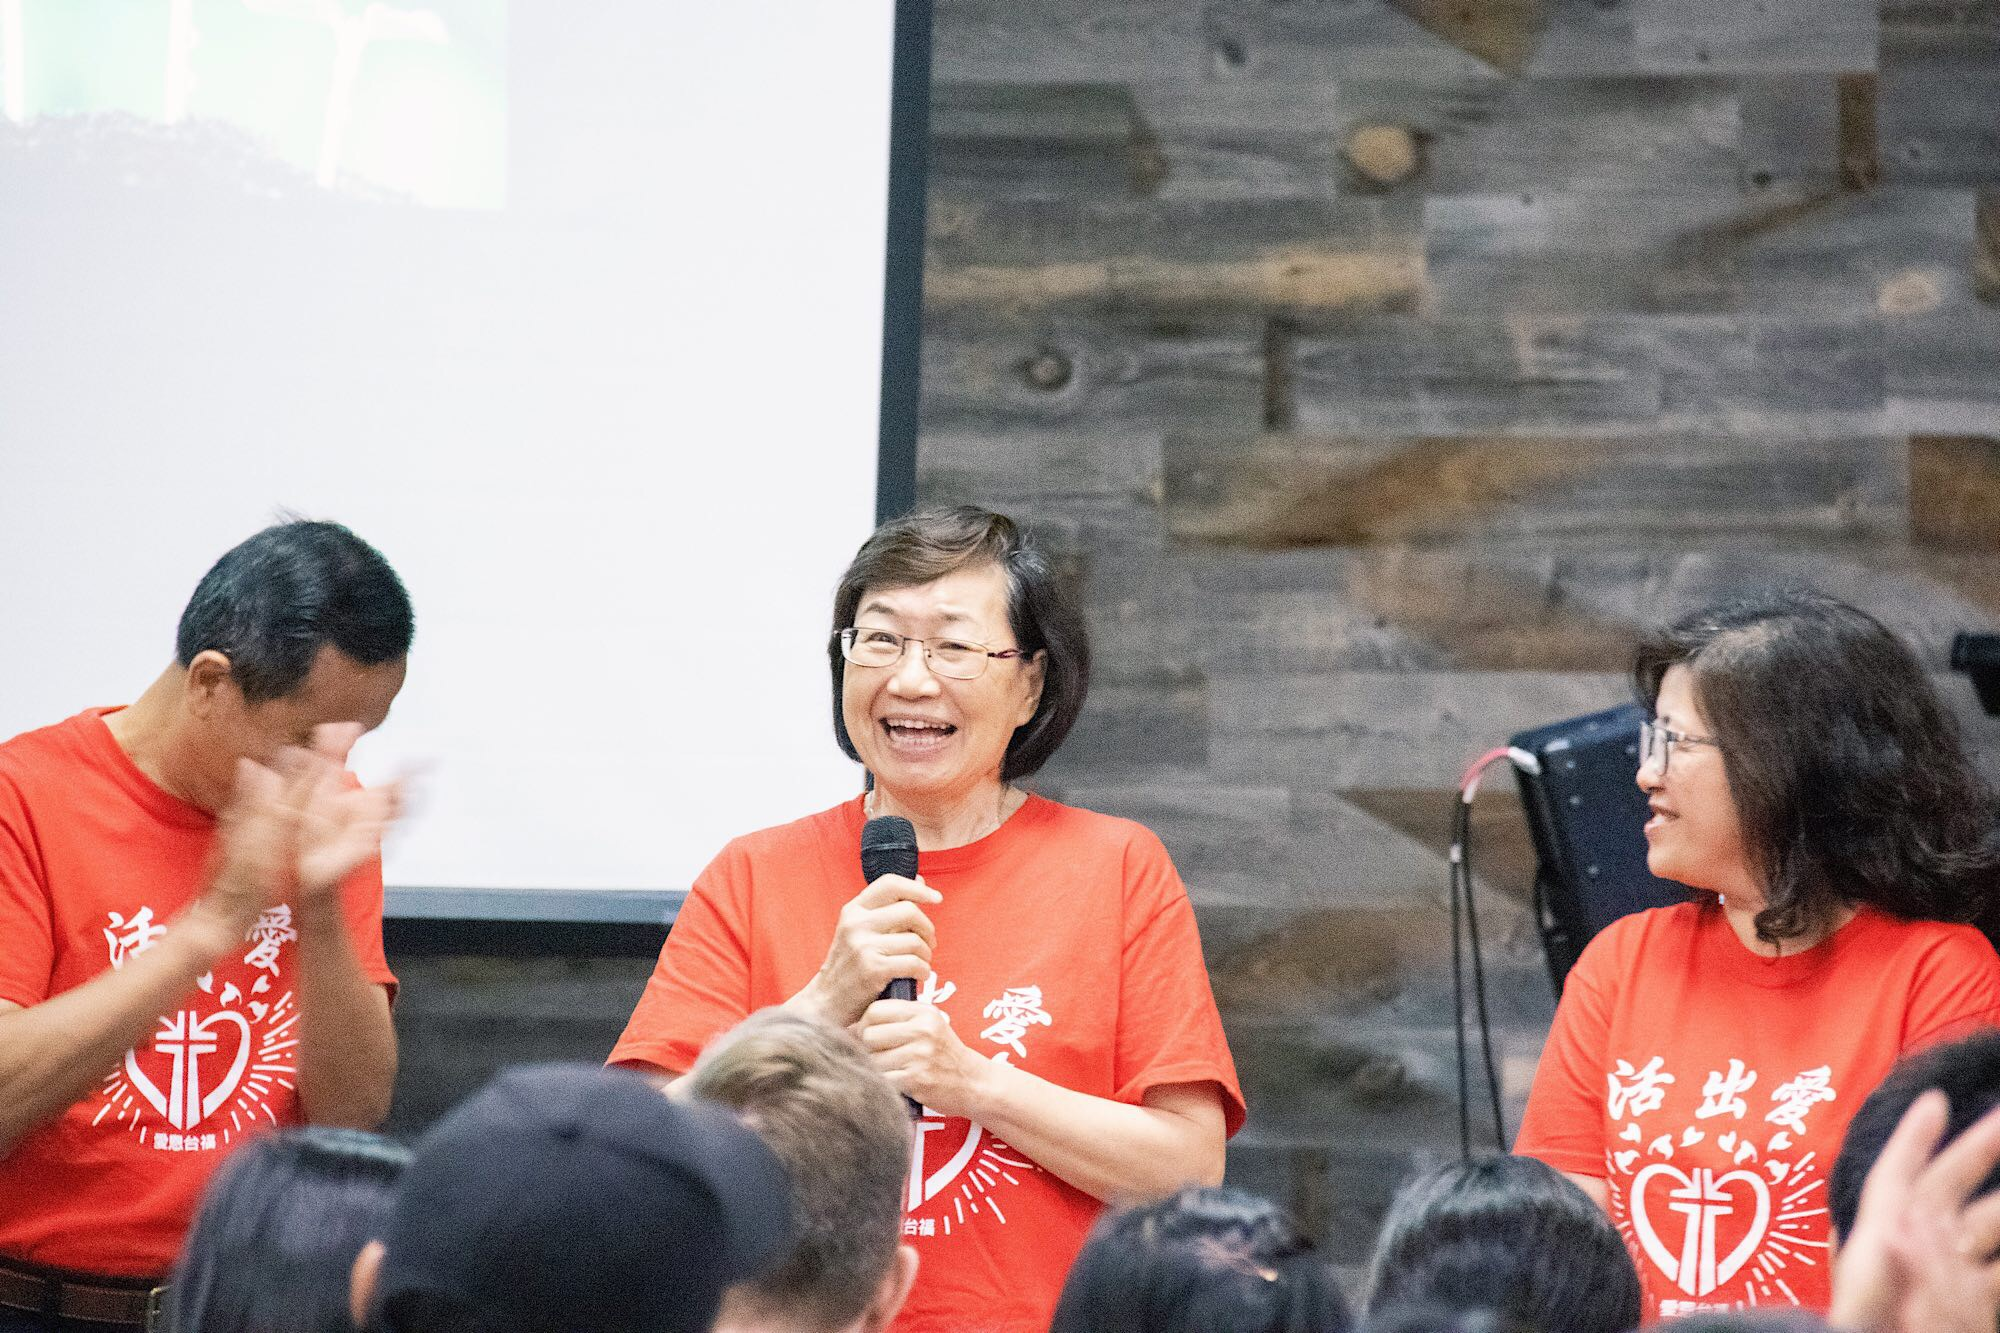 Pastor Ben's mom happens to be the only team member from 1.5G congregation